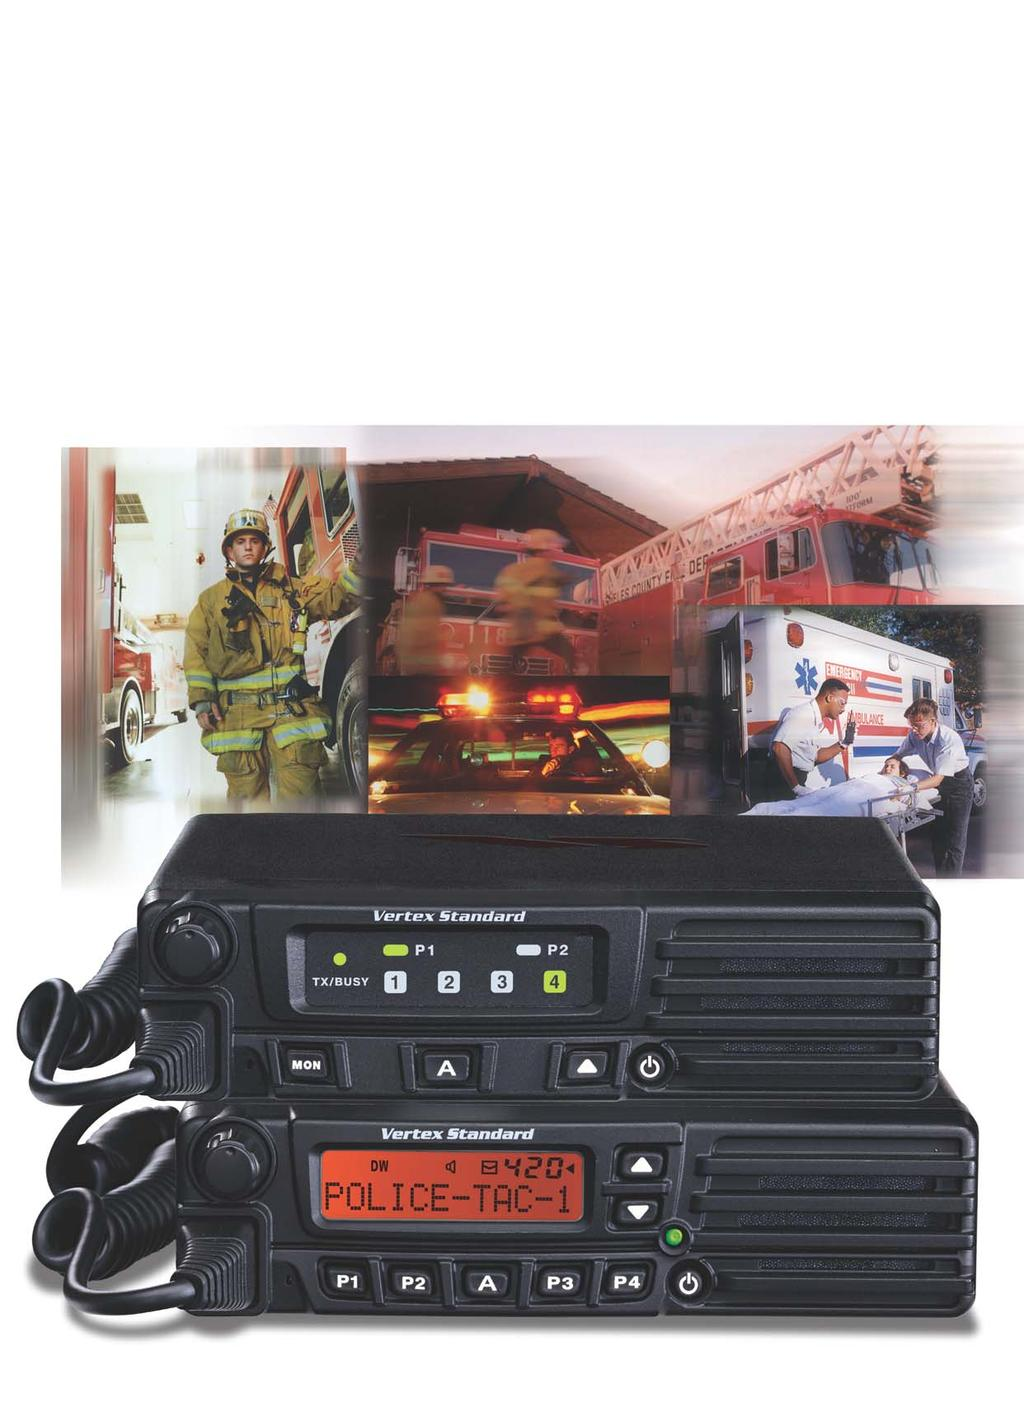 VX-4100/VX-4200 SERIES Public Safety applications require three essential elements: reliability, ruggedness, and performance versatility.